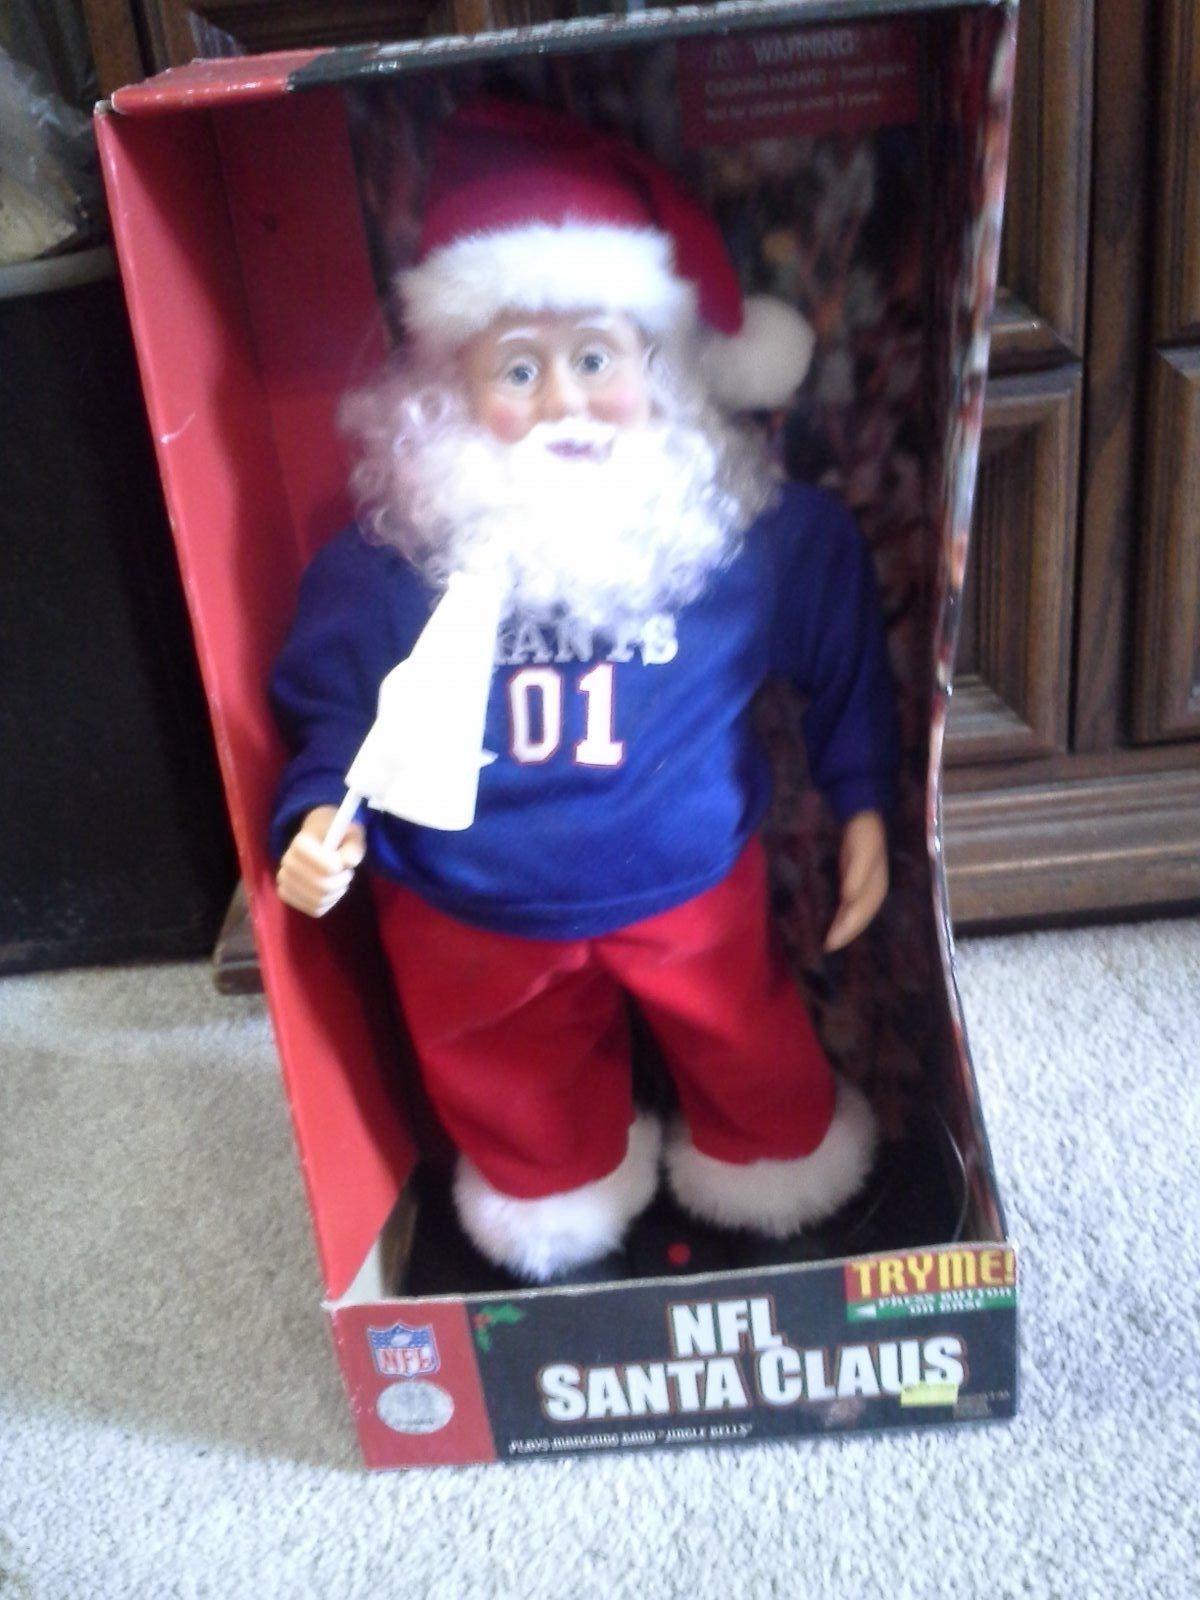 new york giants nfl santa claus animated battery operated football dancingjpg - Nfl On Christmas 2014